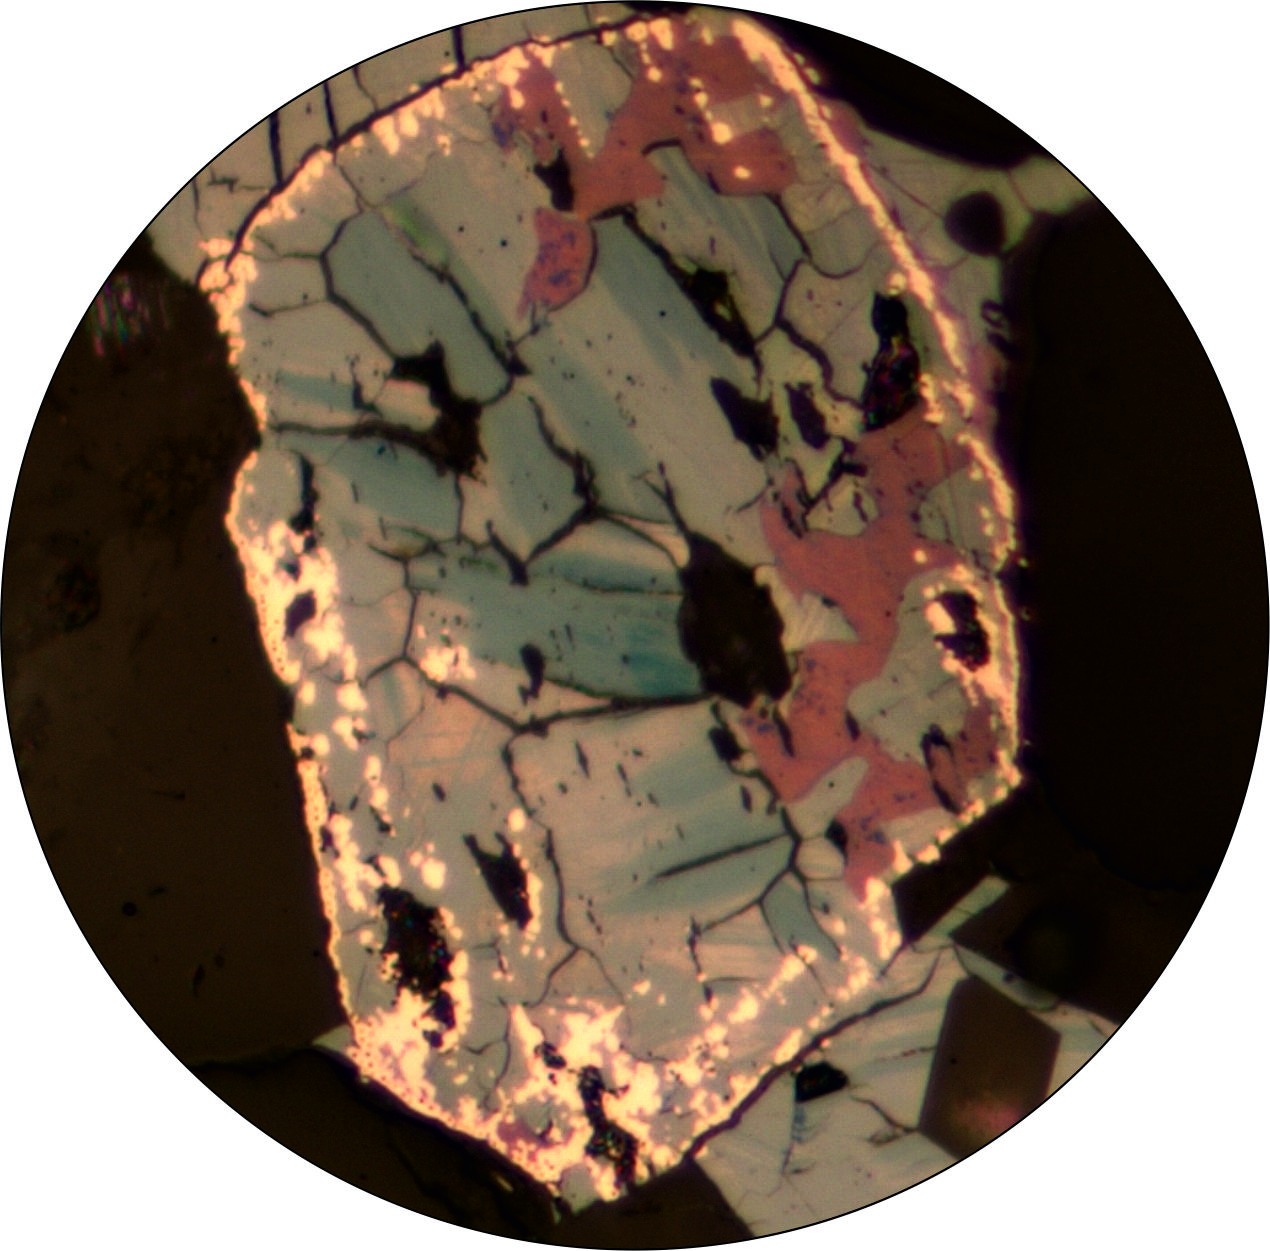 thin section in reflected light